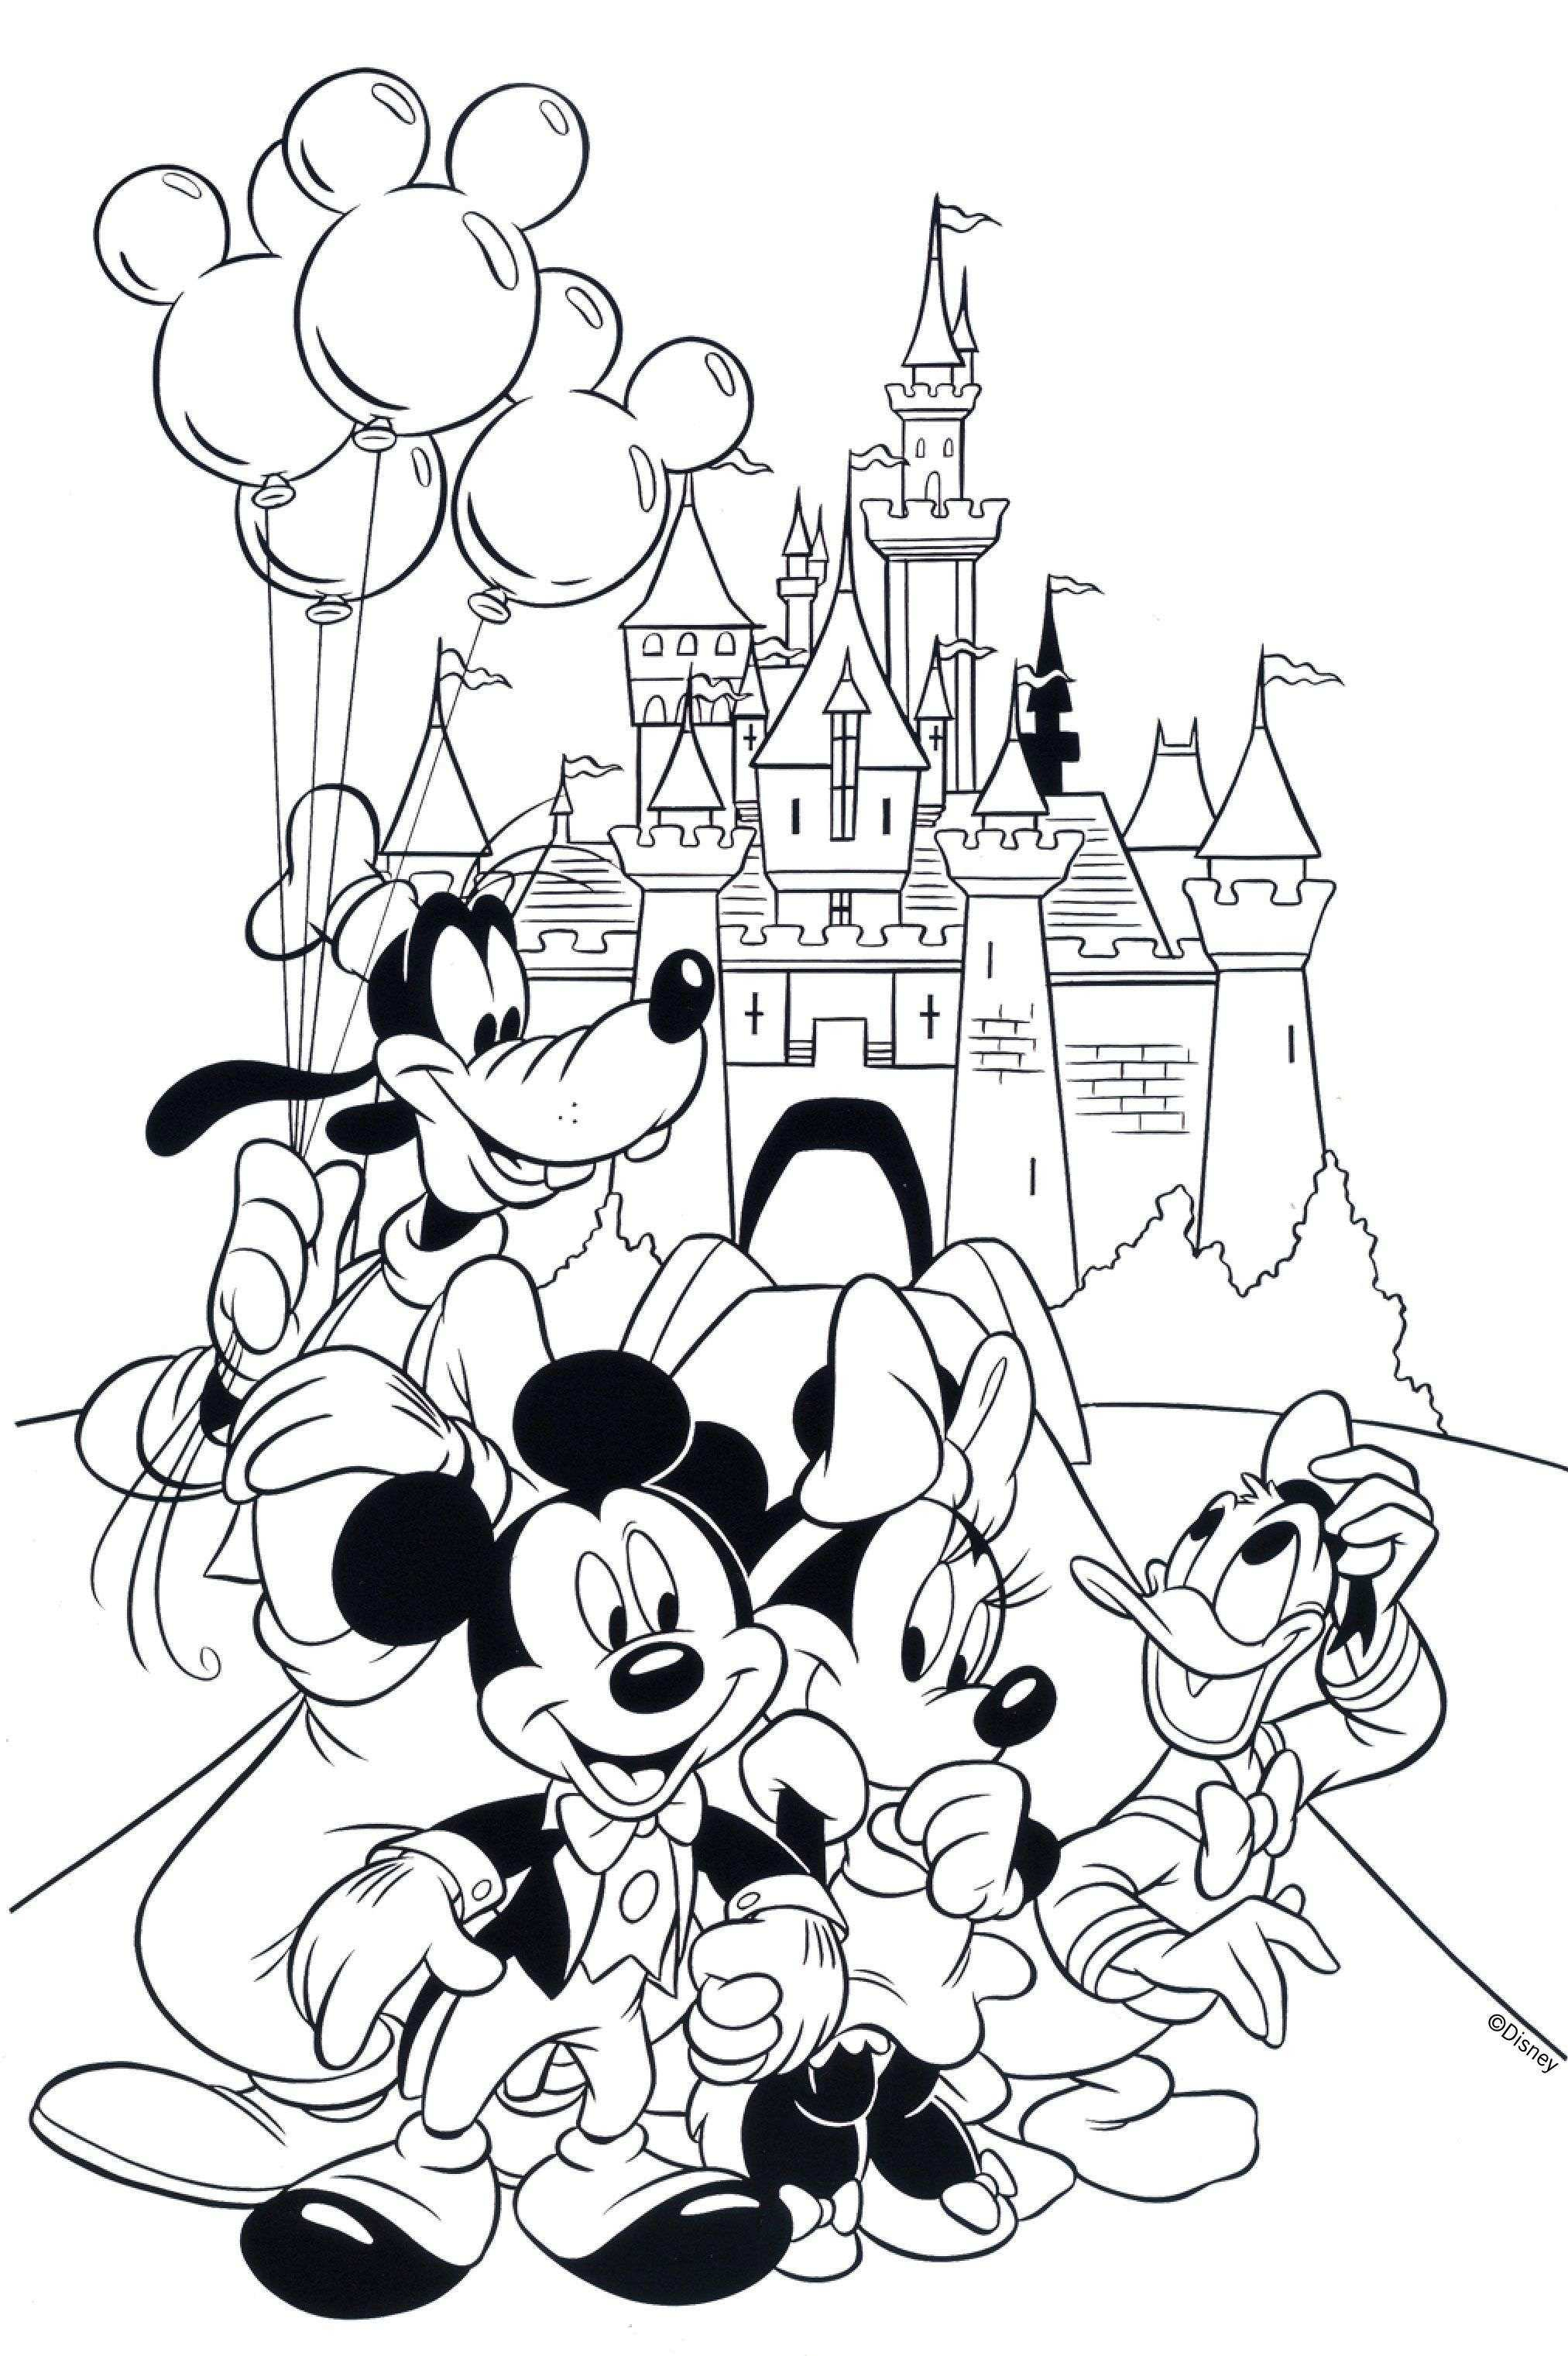 Mickey Mouse And Minnie Coloring Pages Mouse Coloring Pages For Kids With Free Printable Minnie Mouse